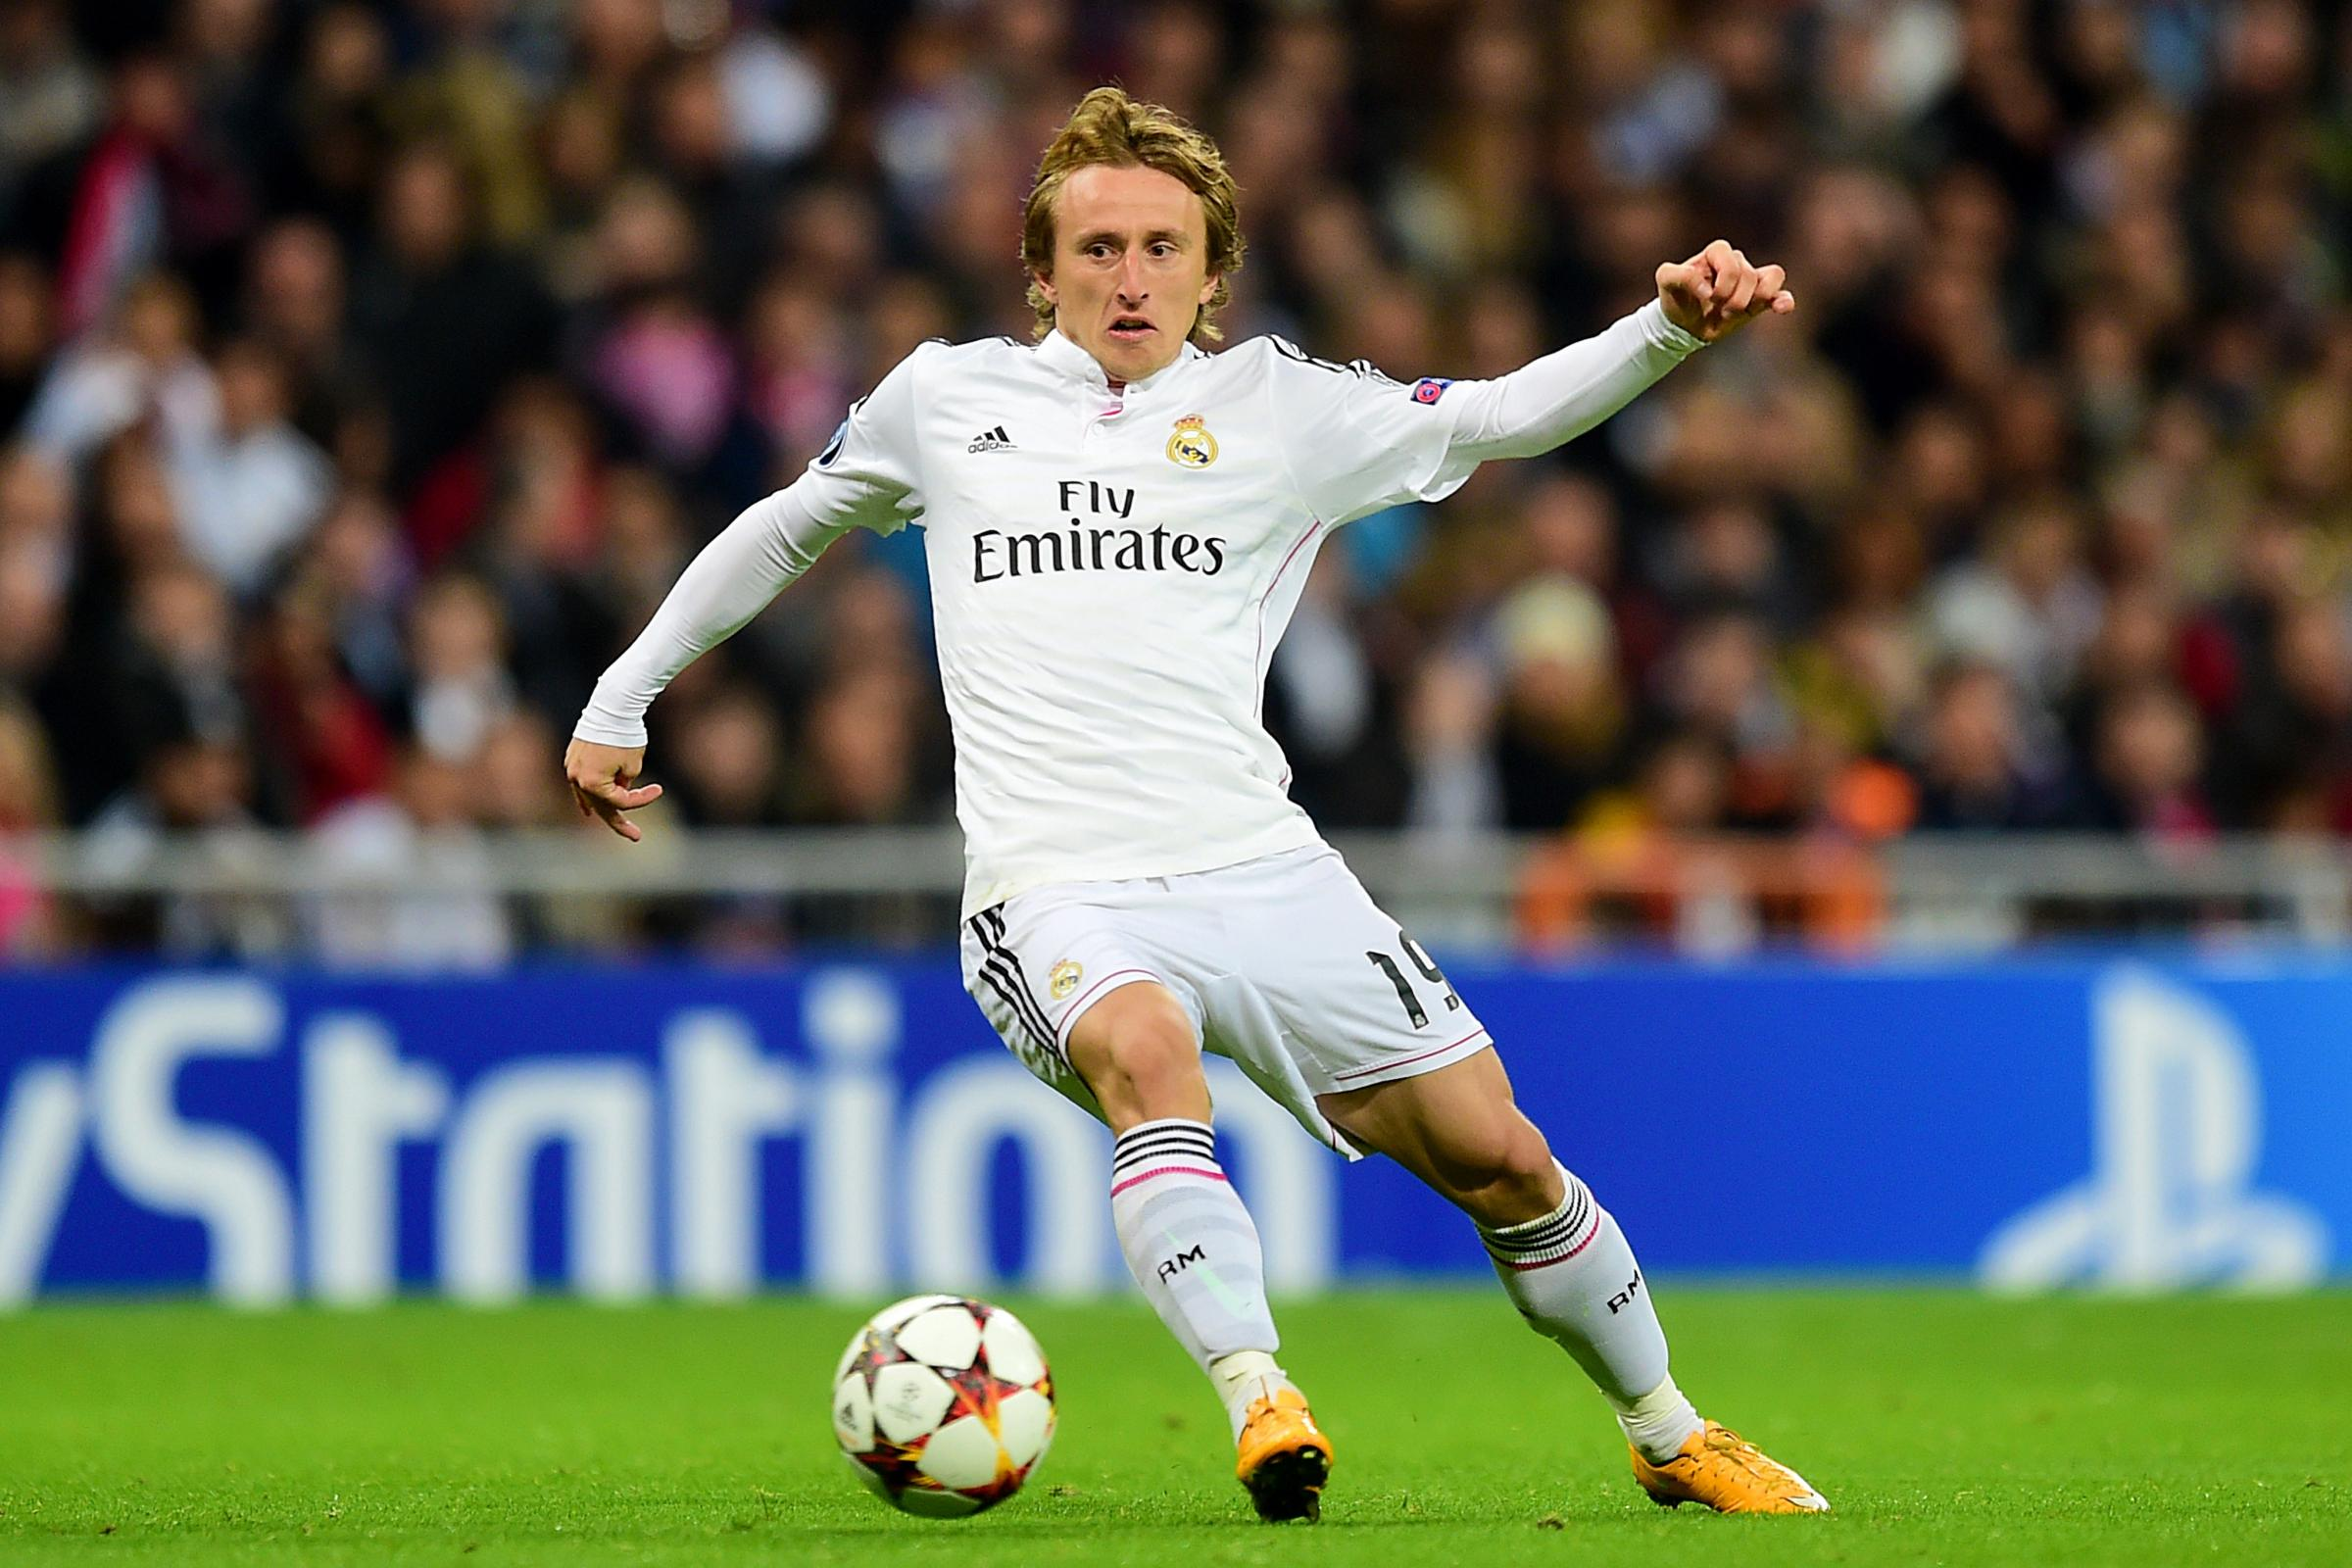 Luka Modric is likely to be rested for Real Madrid Copa del Rey tie